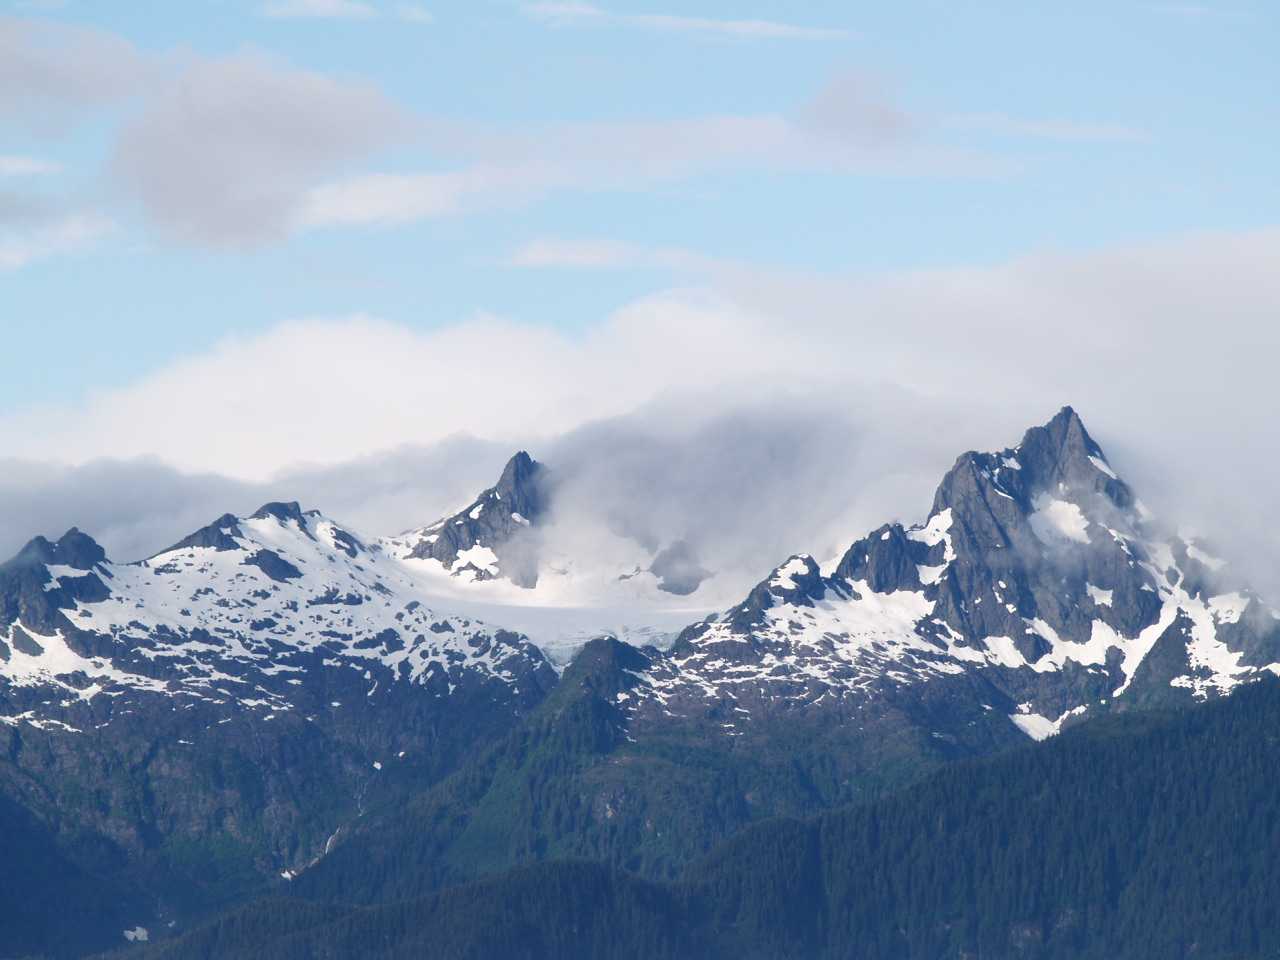 At times, the clouds would clear and reveal these sharp, jagged peaks - Catham Strait (2006)